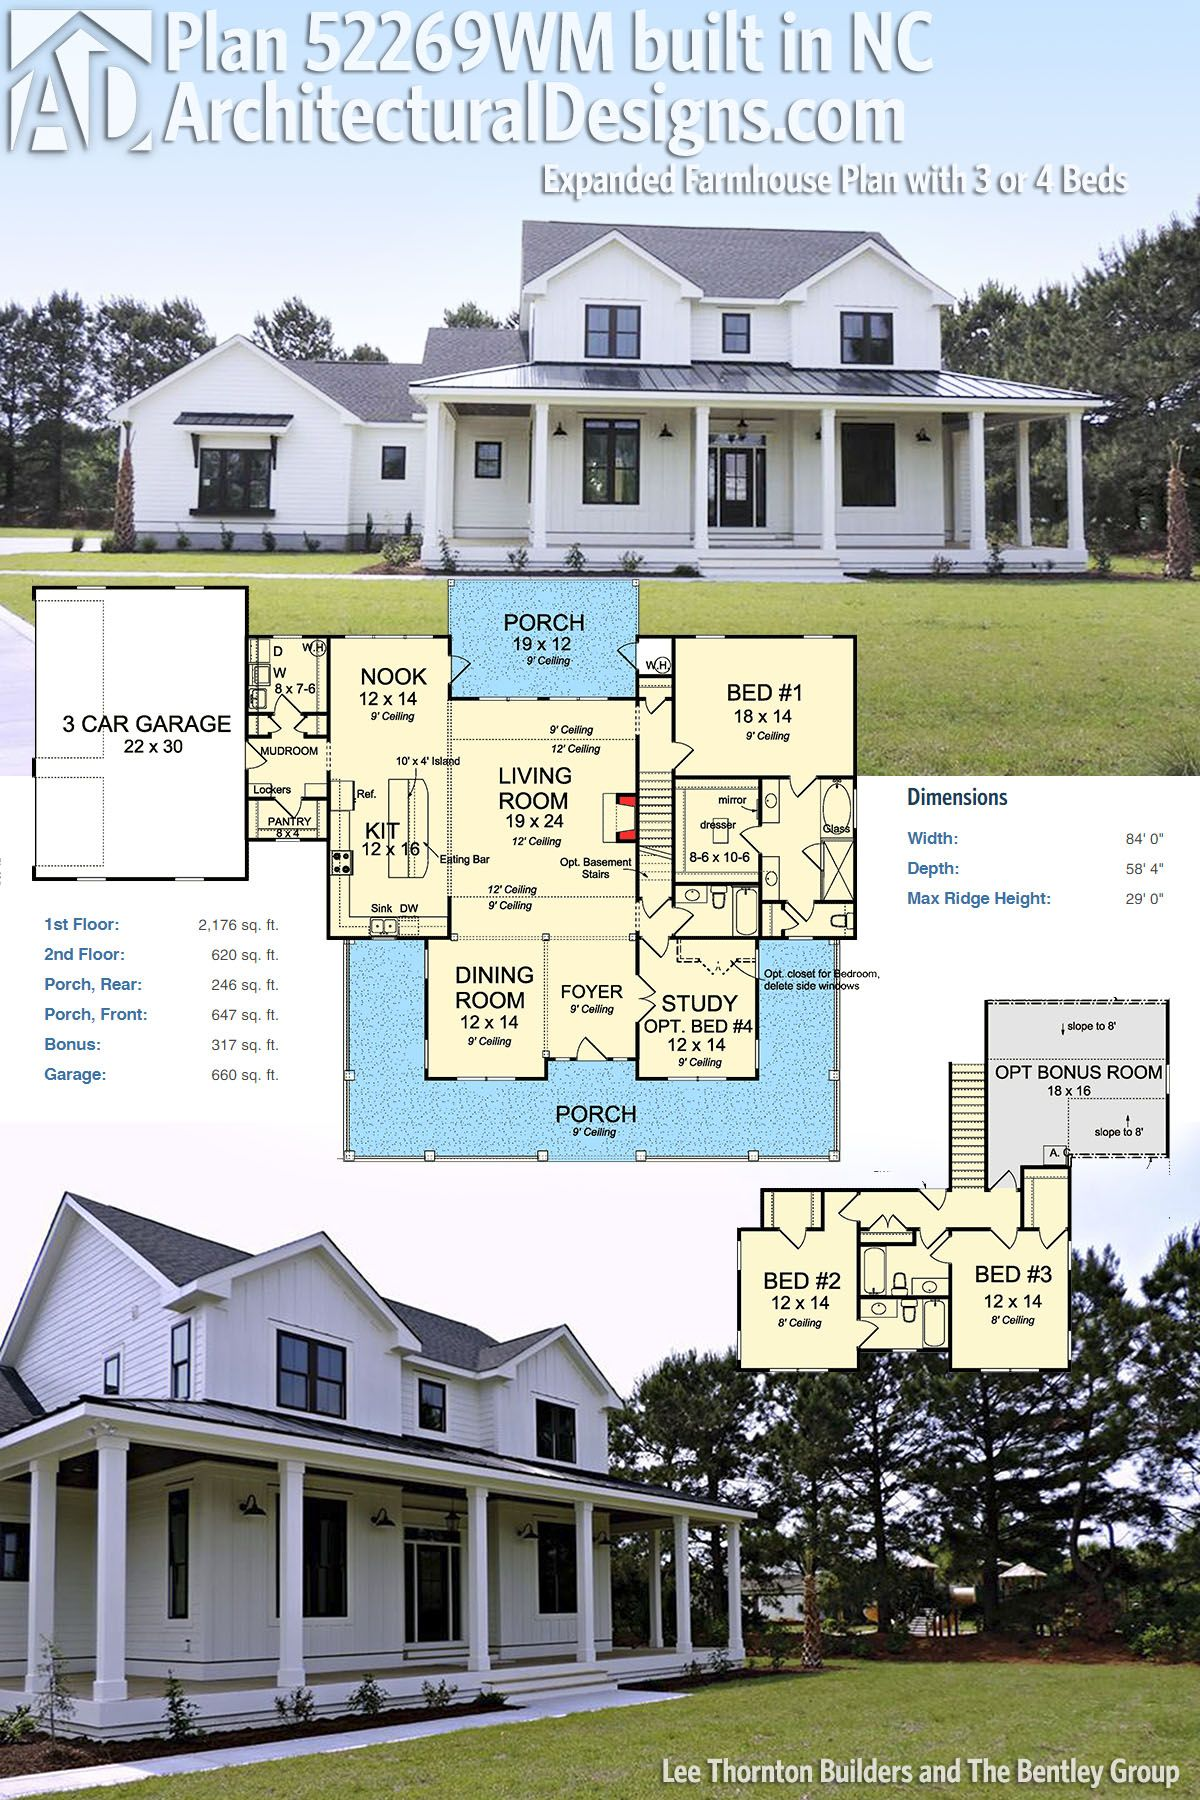 Plan 52269wm expanded farmhouse plan with 3 or 4 beds for Architectural design home plans